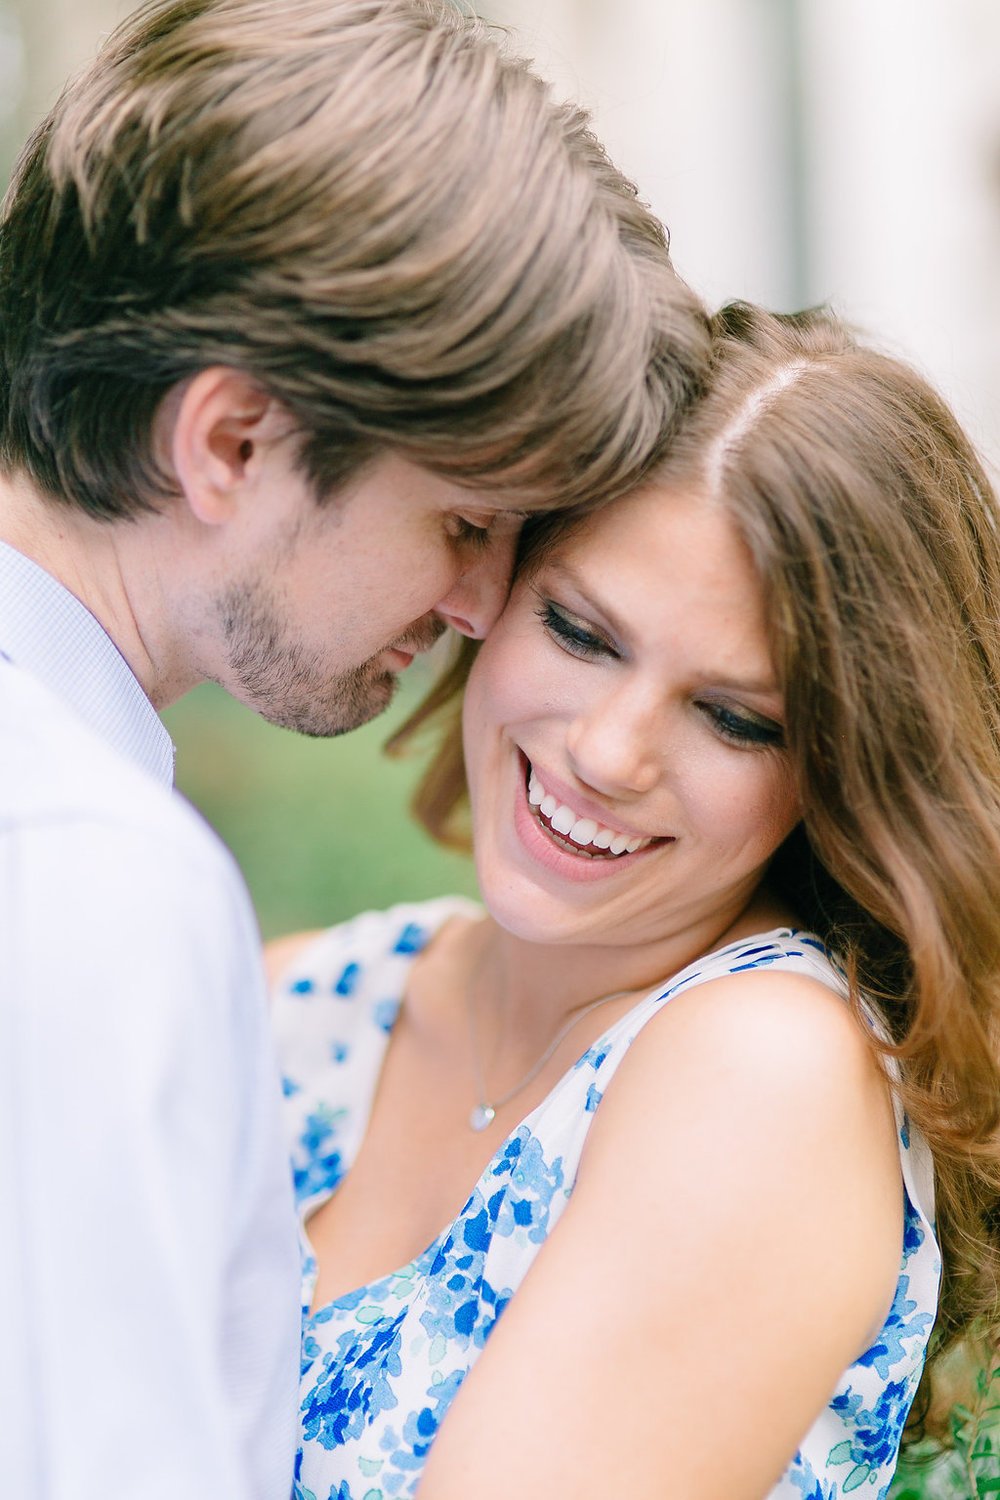 Mirror-Mirror-muah-engagement-airbrush-makeup-charleston-engagement-photos-julianne-brad-011.jpg